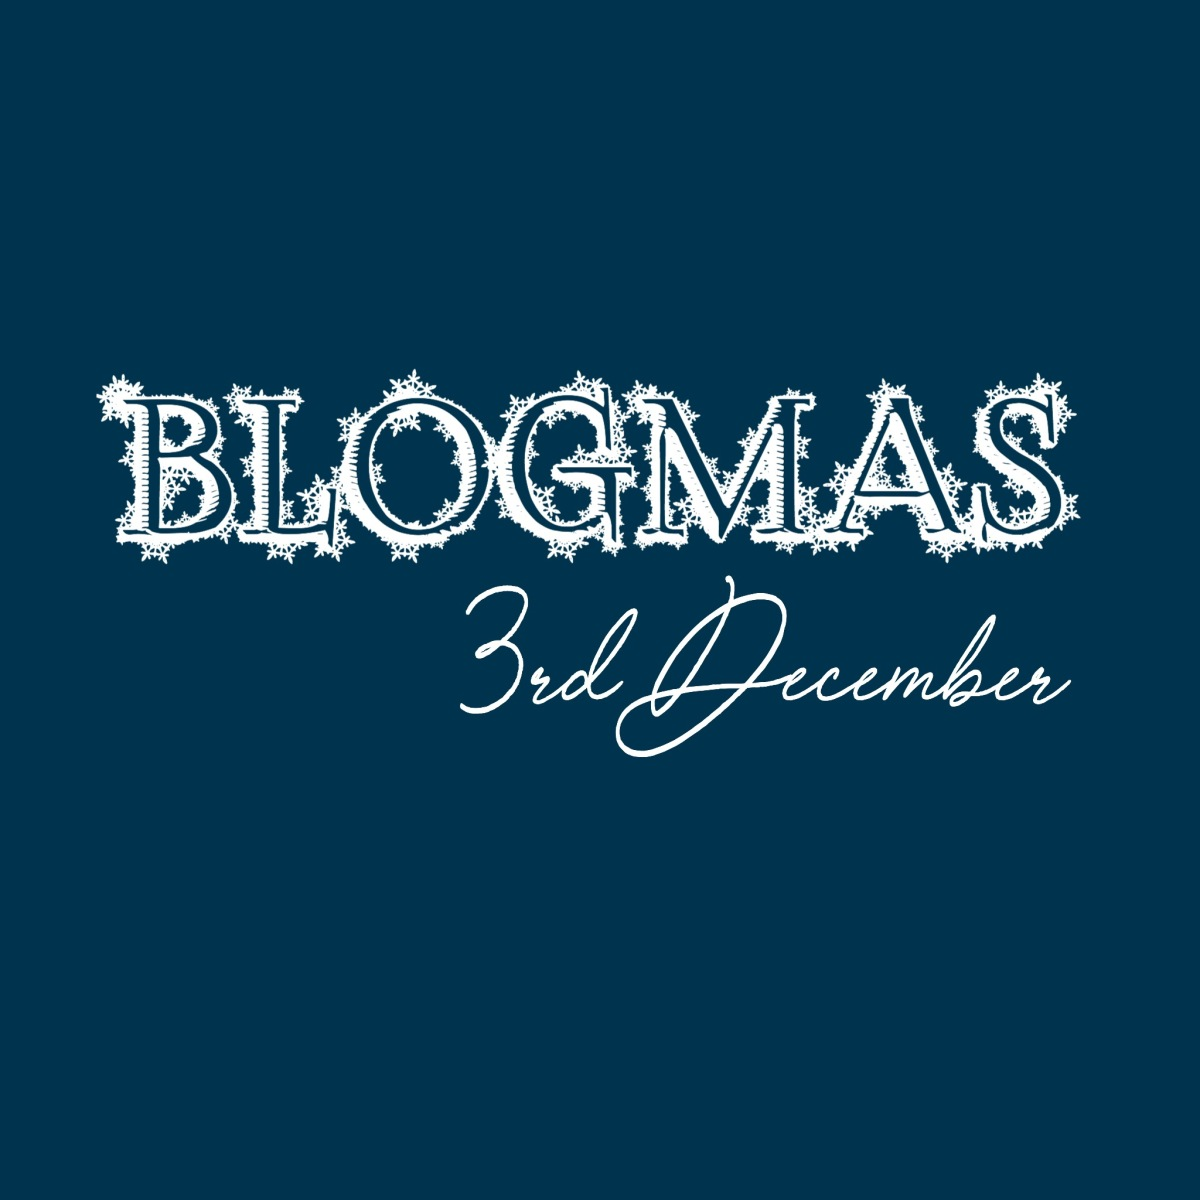 Blogmas - My Fantasy Christmas Wish List